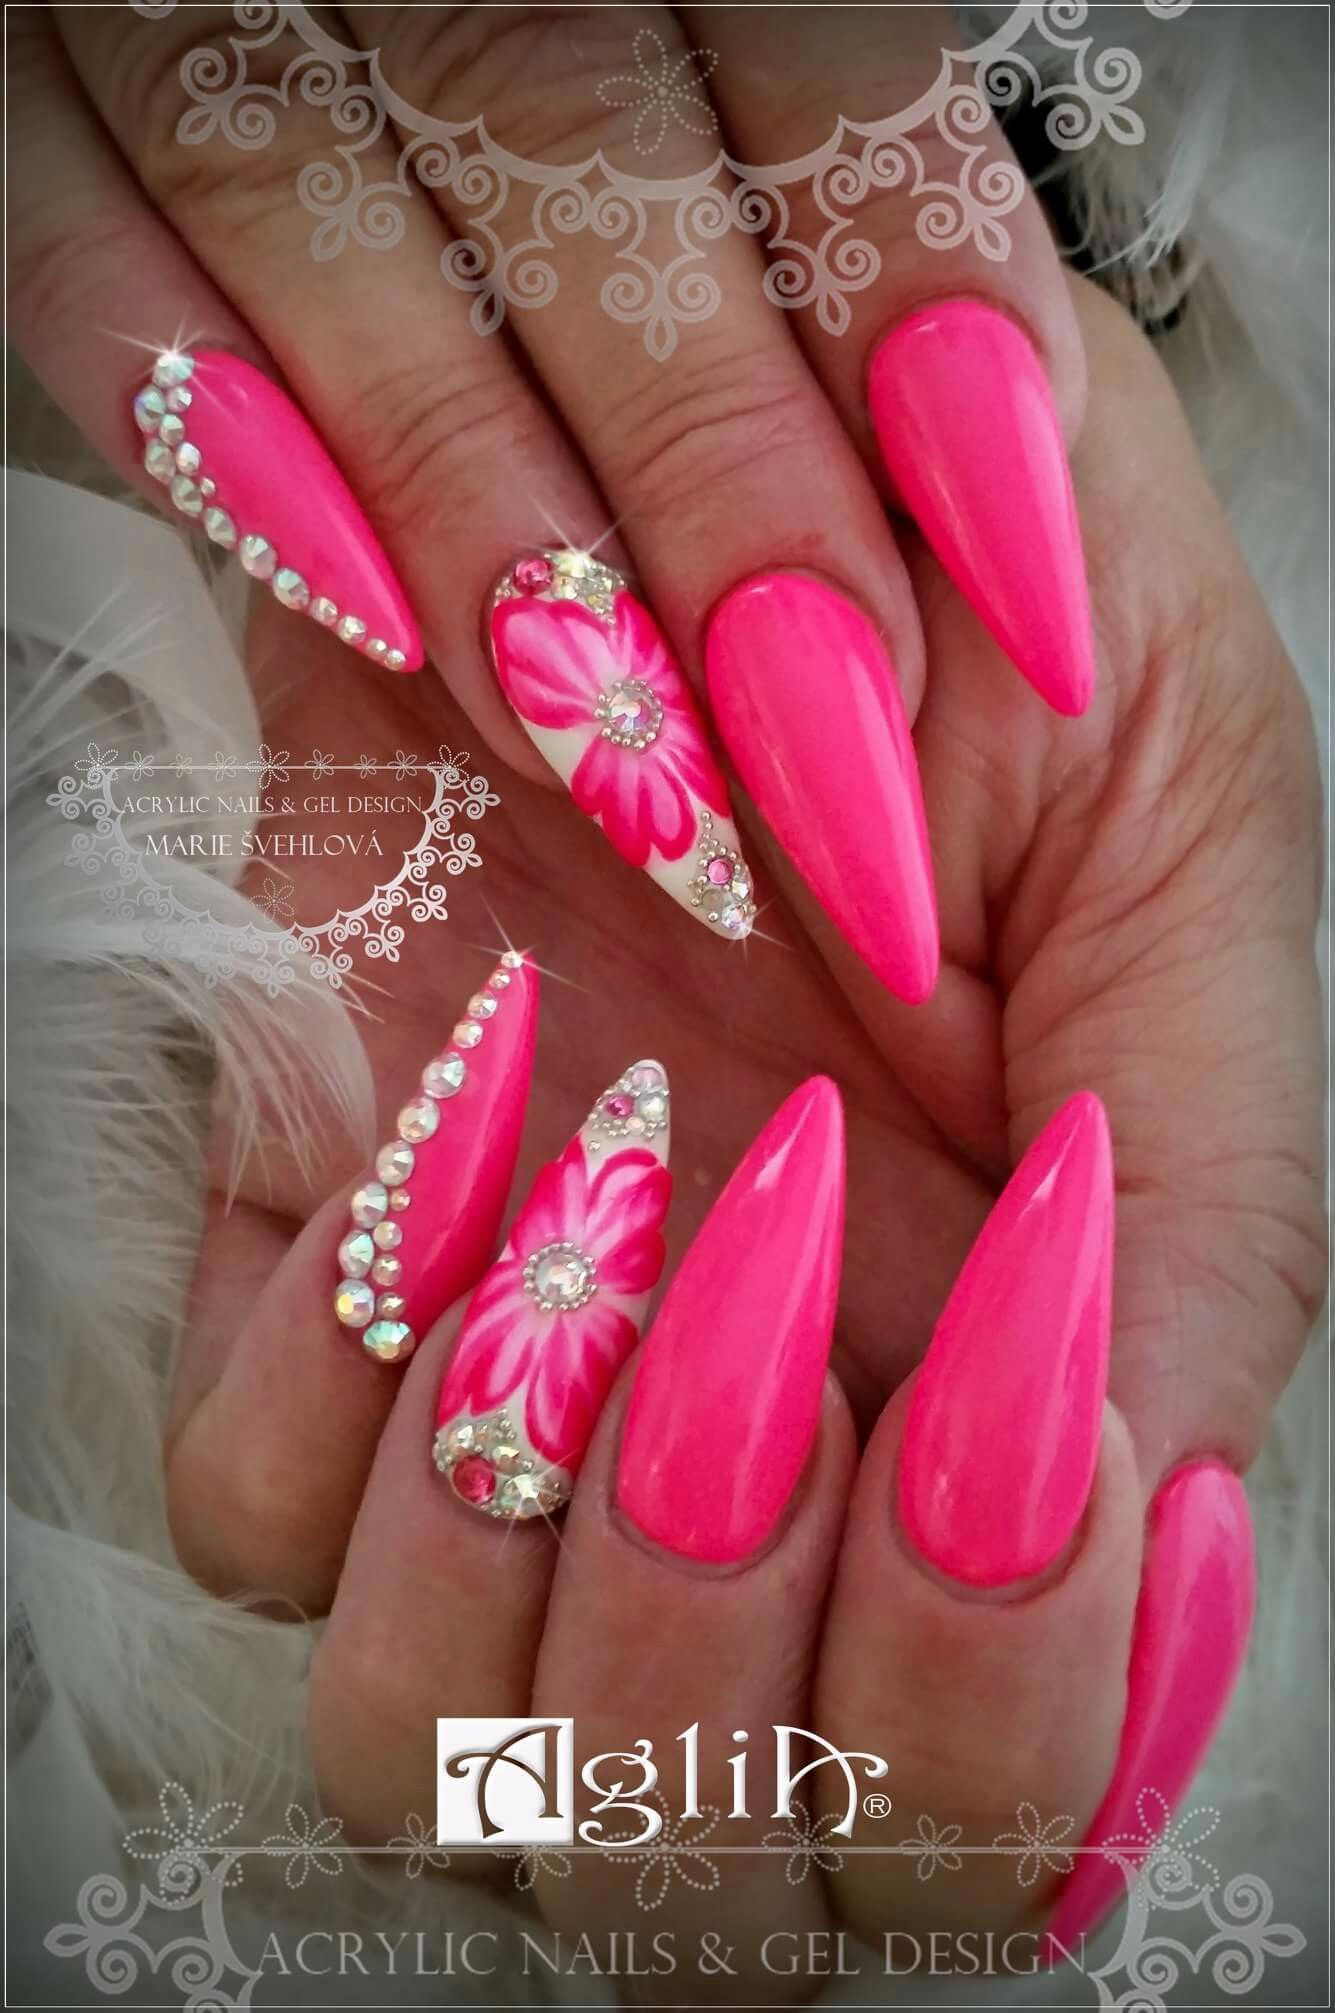 Acrylic Nails Gel Design Pink Nails Neon Pink Neon Pink Nails Pink Nails Pink Nail Designs